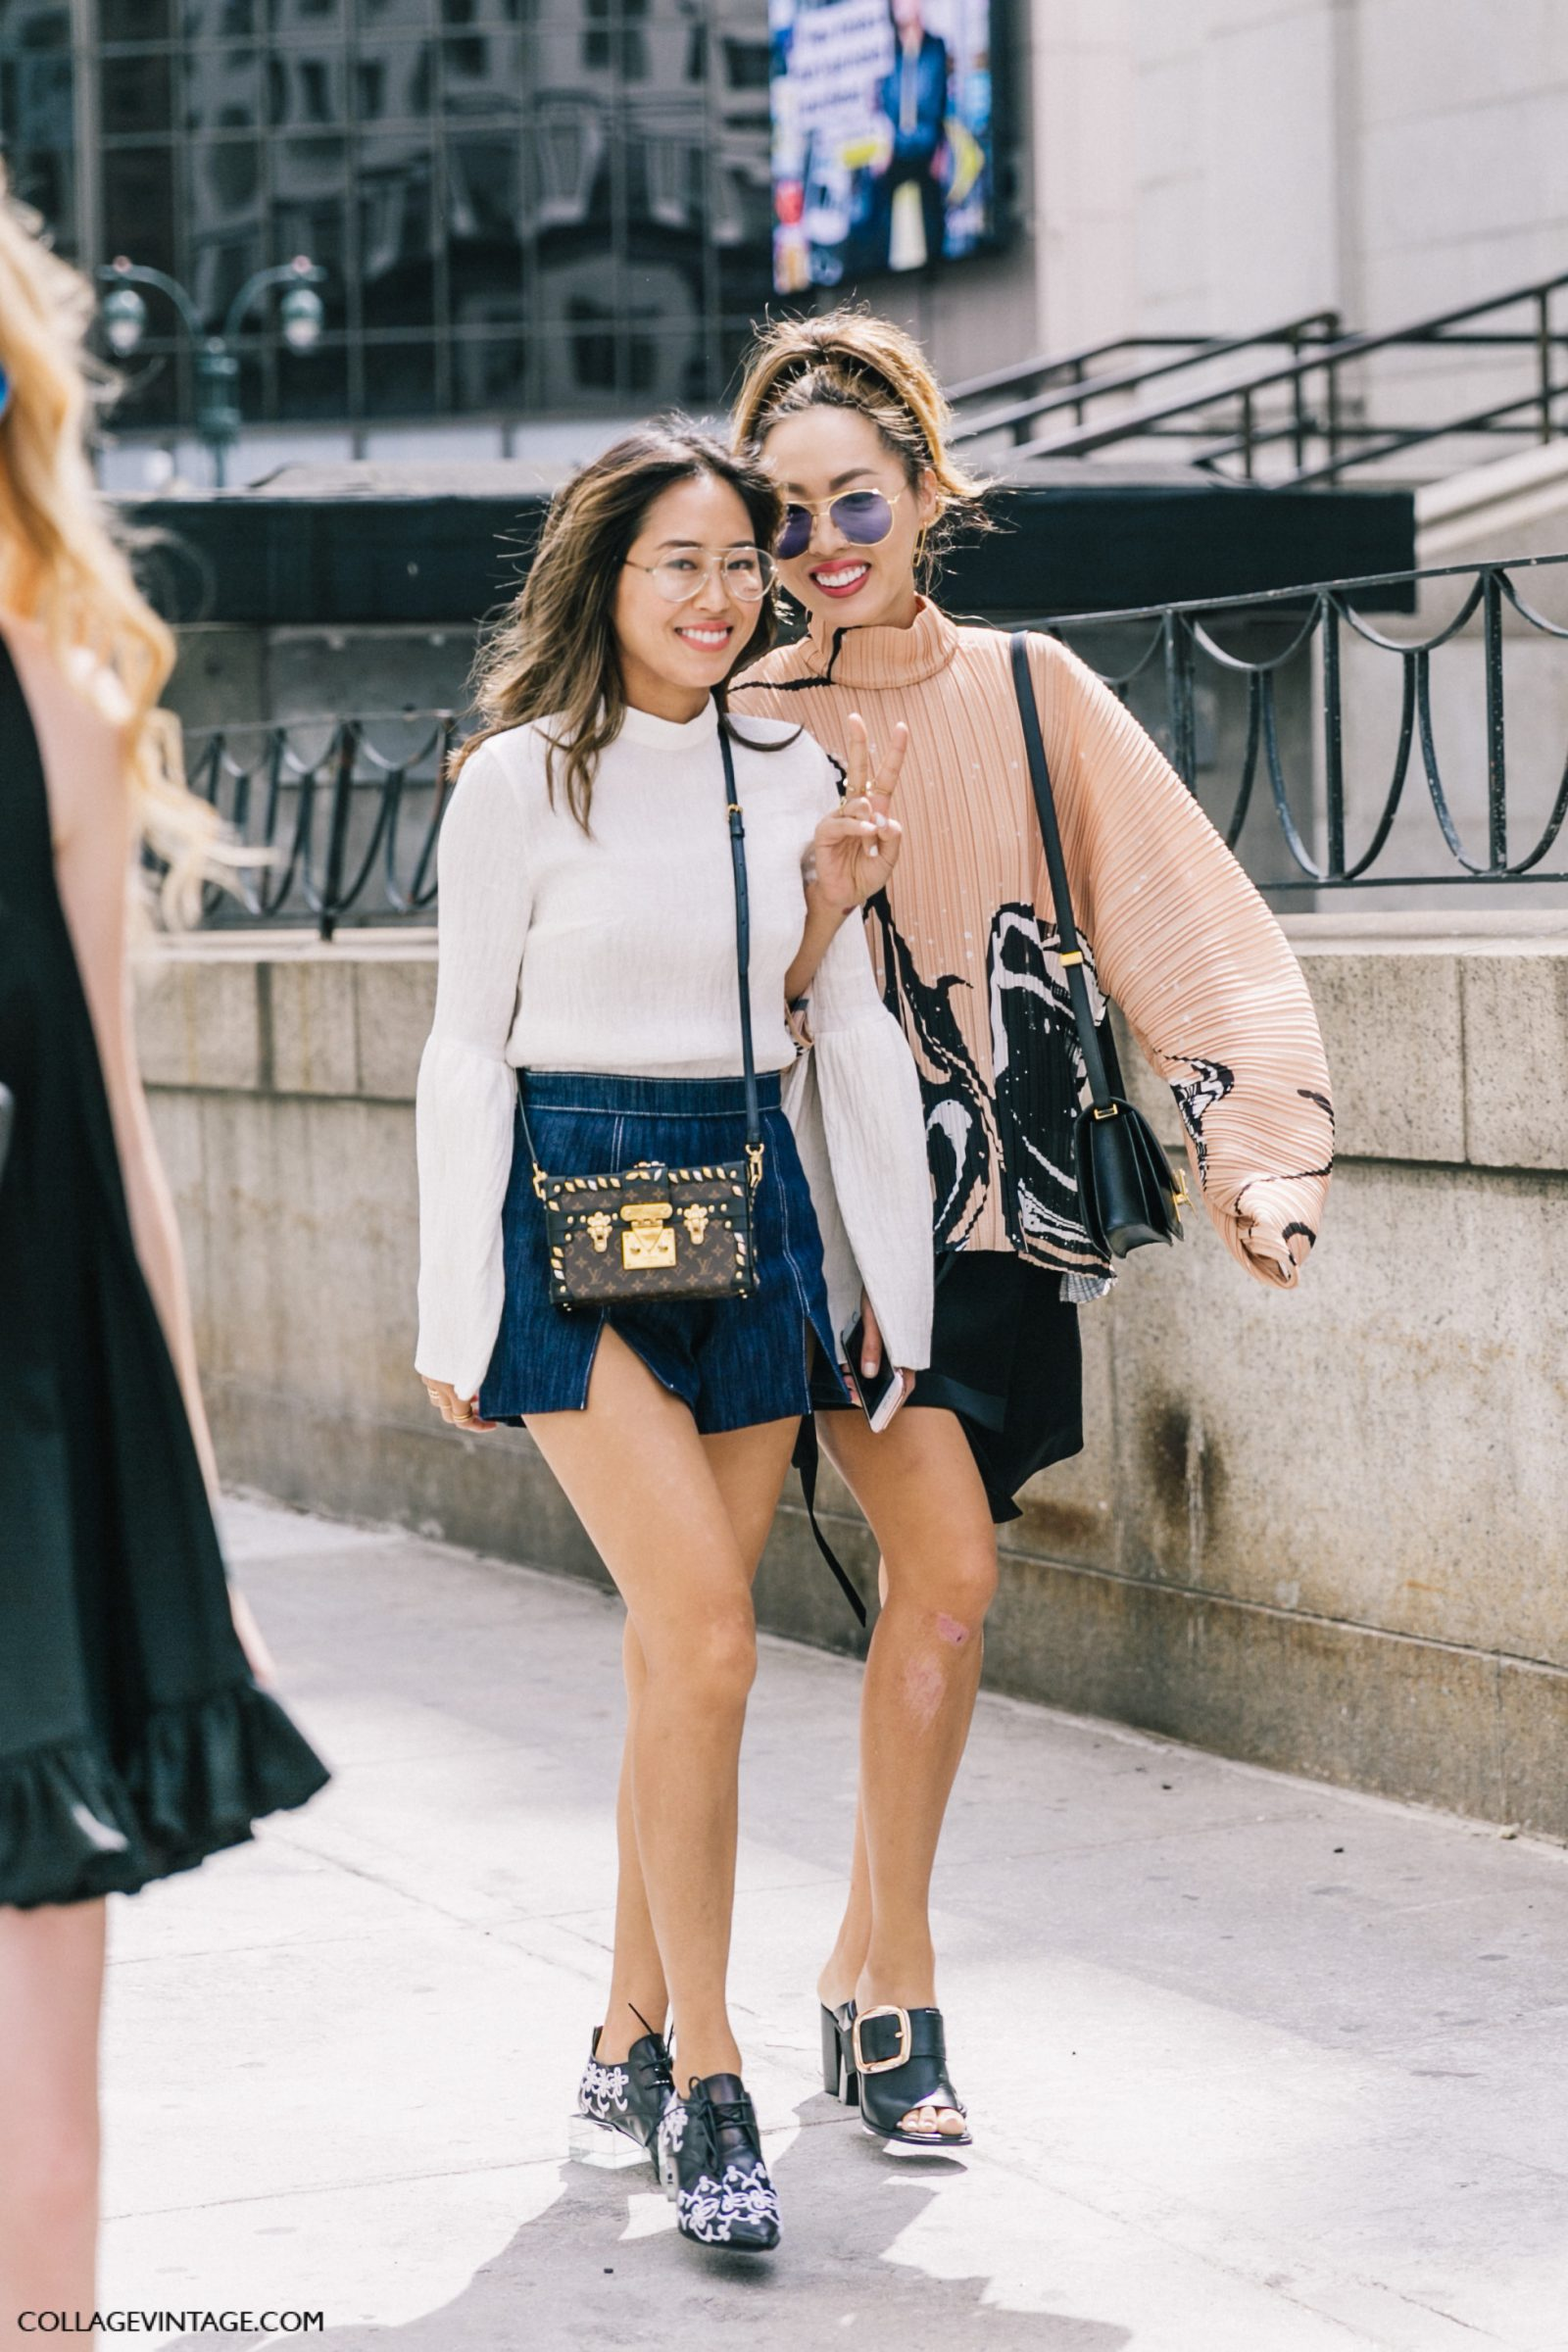 nyfw-new_york_fashion_week_ss17-street_style-outfits-collage_vintage-vintage-tome-72